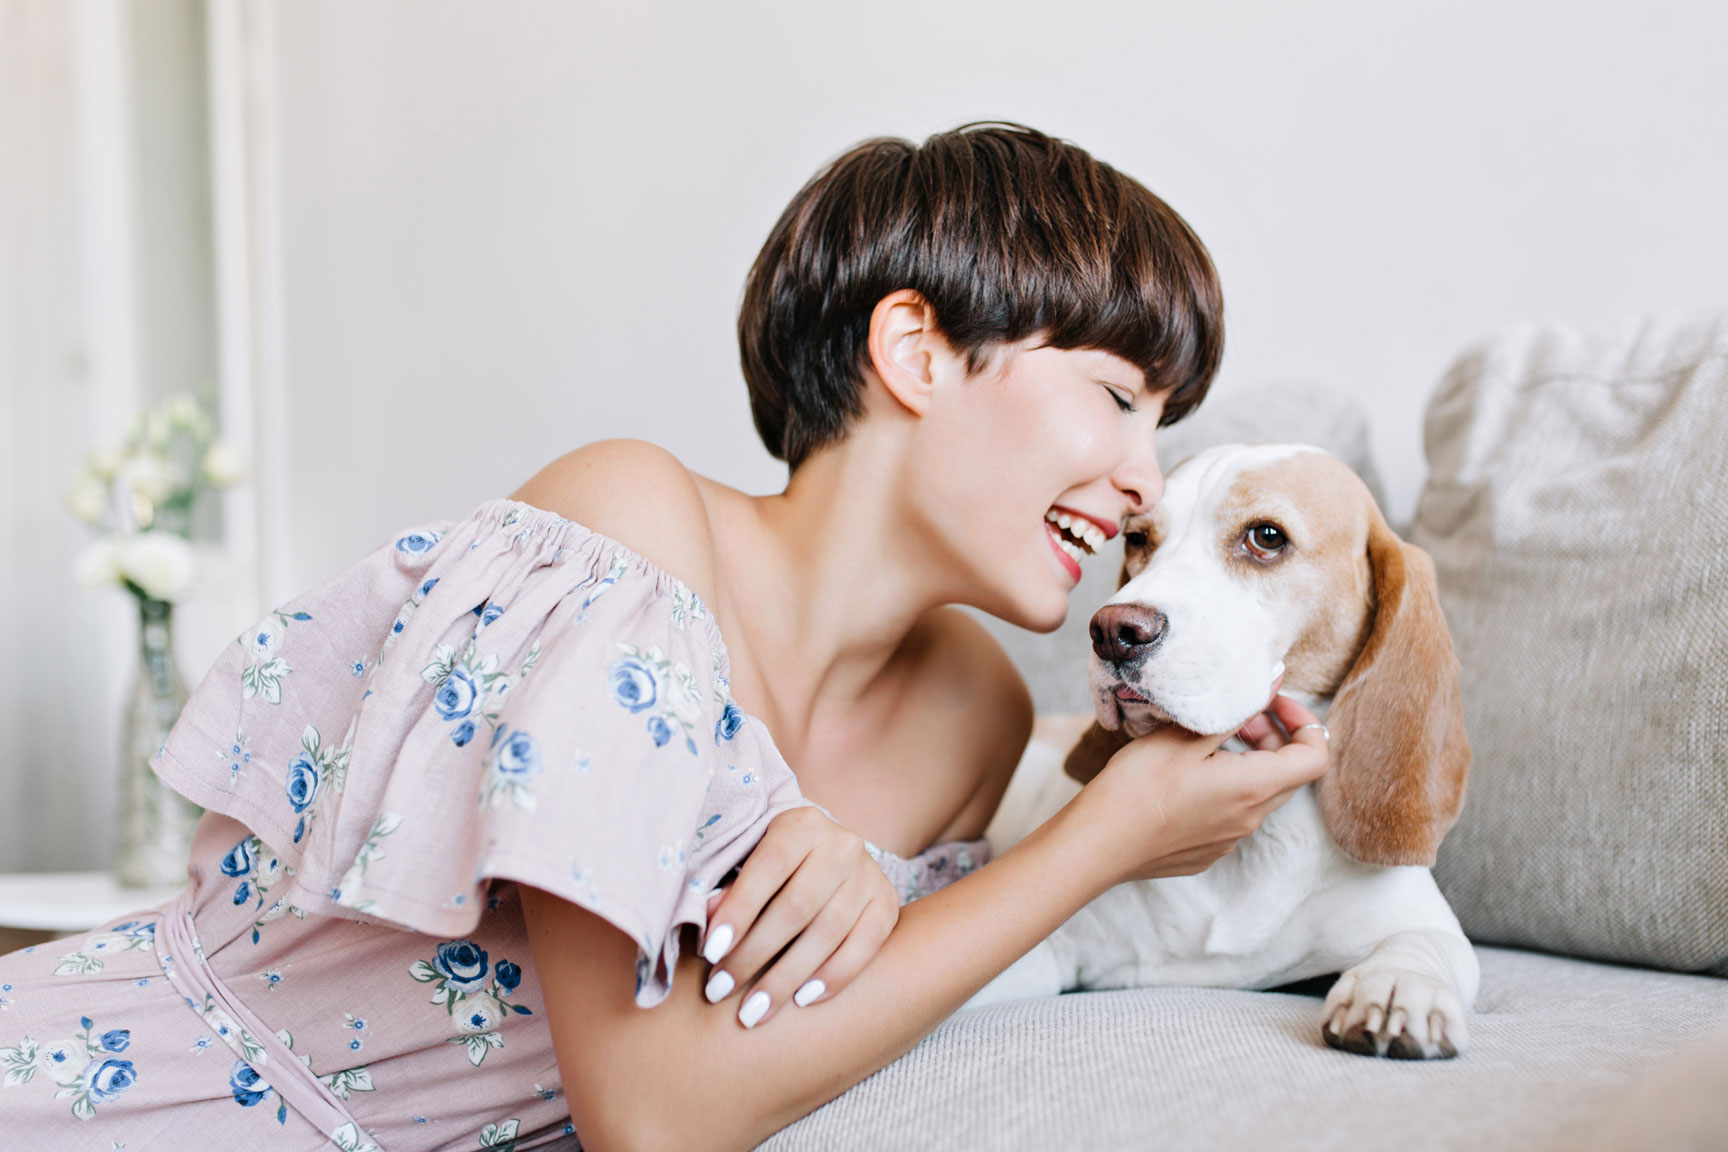 woman laughing with her dog kissing the dog